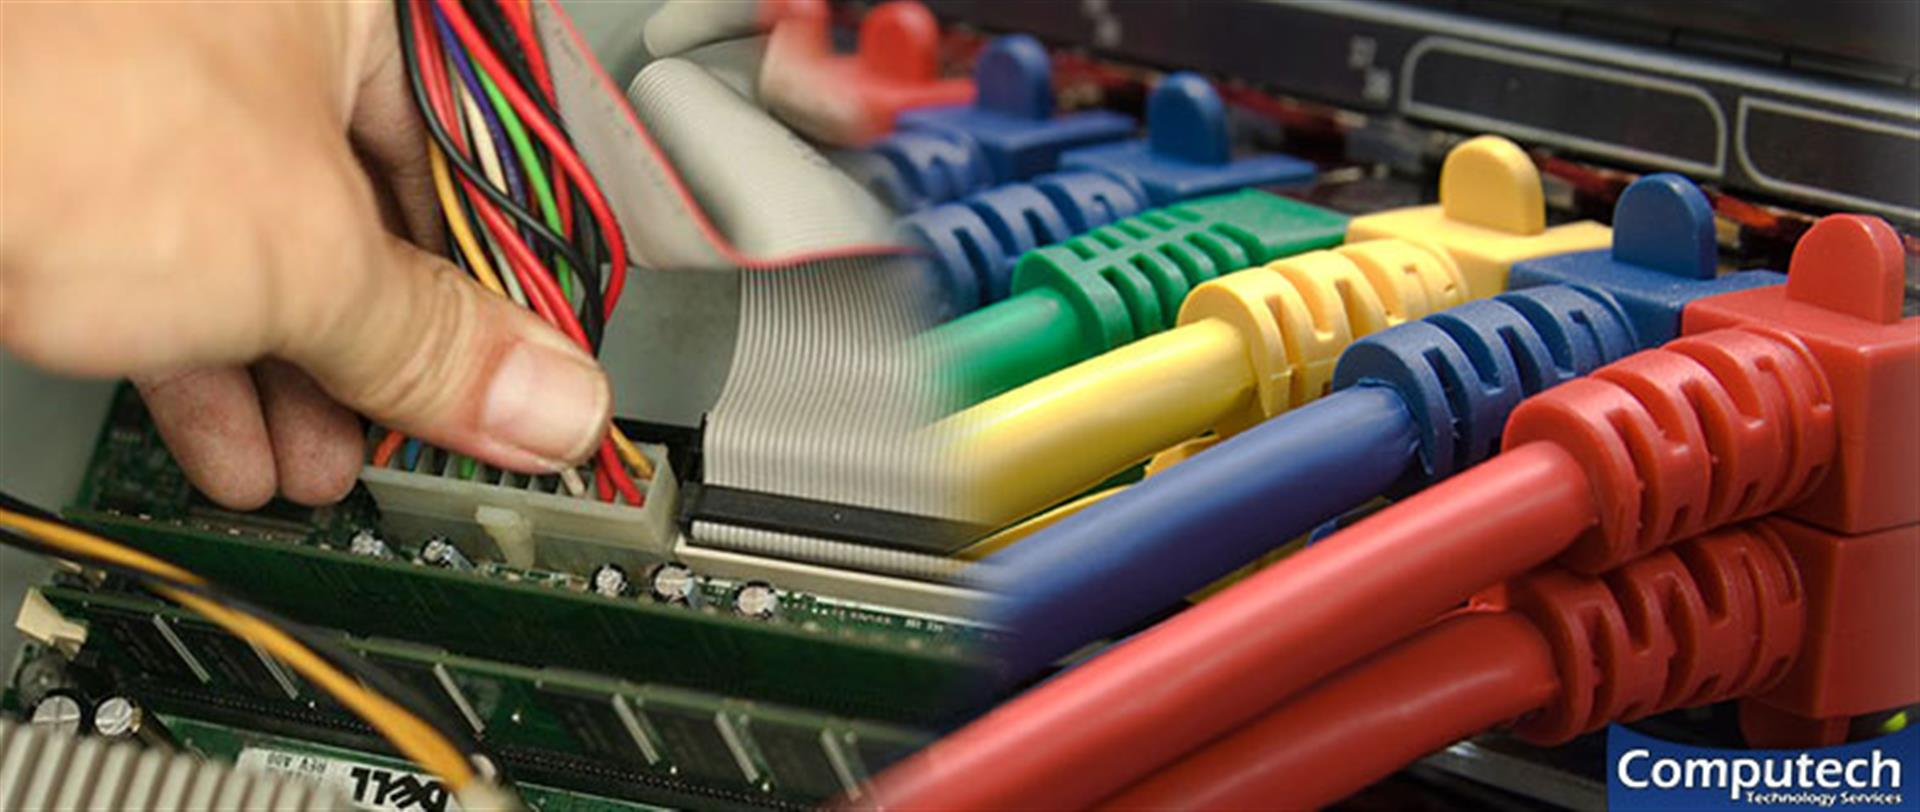 Oak Ridge Tennessee On-Site Computer PC & Printer Repair, Networks, Voice & Data Cabling Solutions